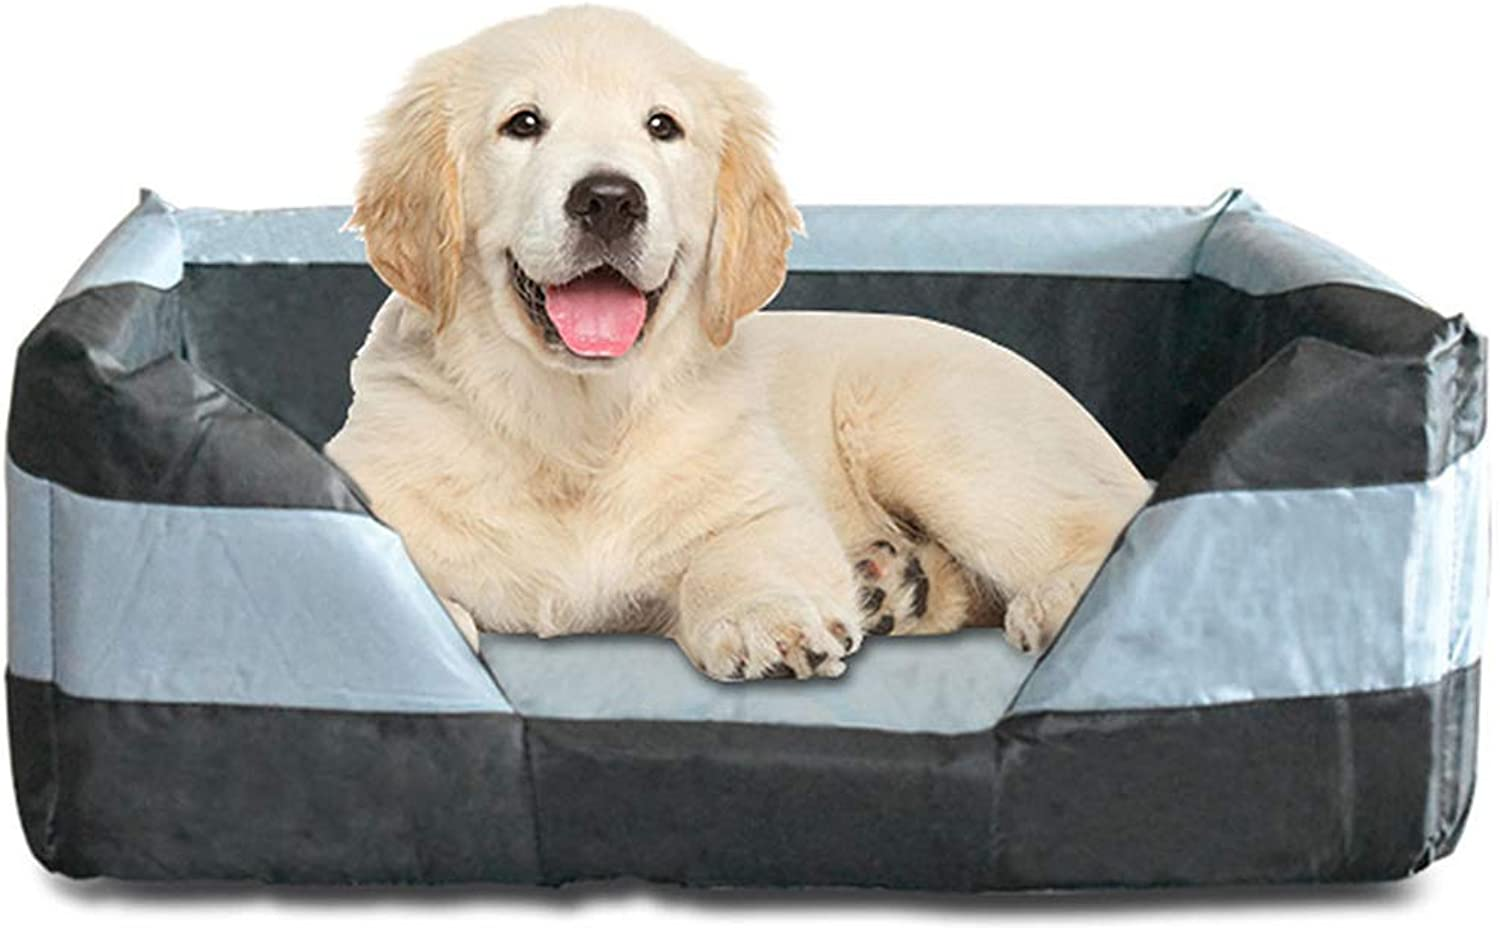 BYCWS Rectangle Pet Bed, Pet Products SelfWarming Lounge Sleeper Pet Bed Cuddler Pet Bed,29.53x21.65x11.02in